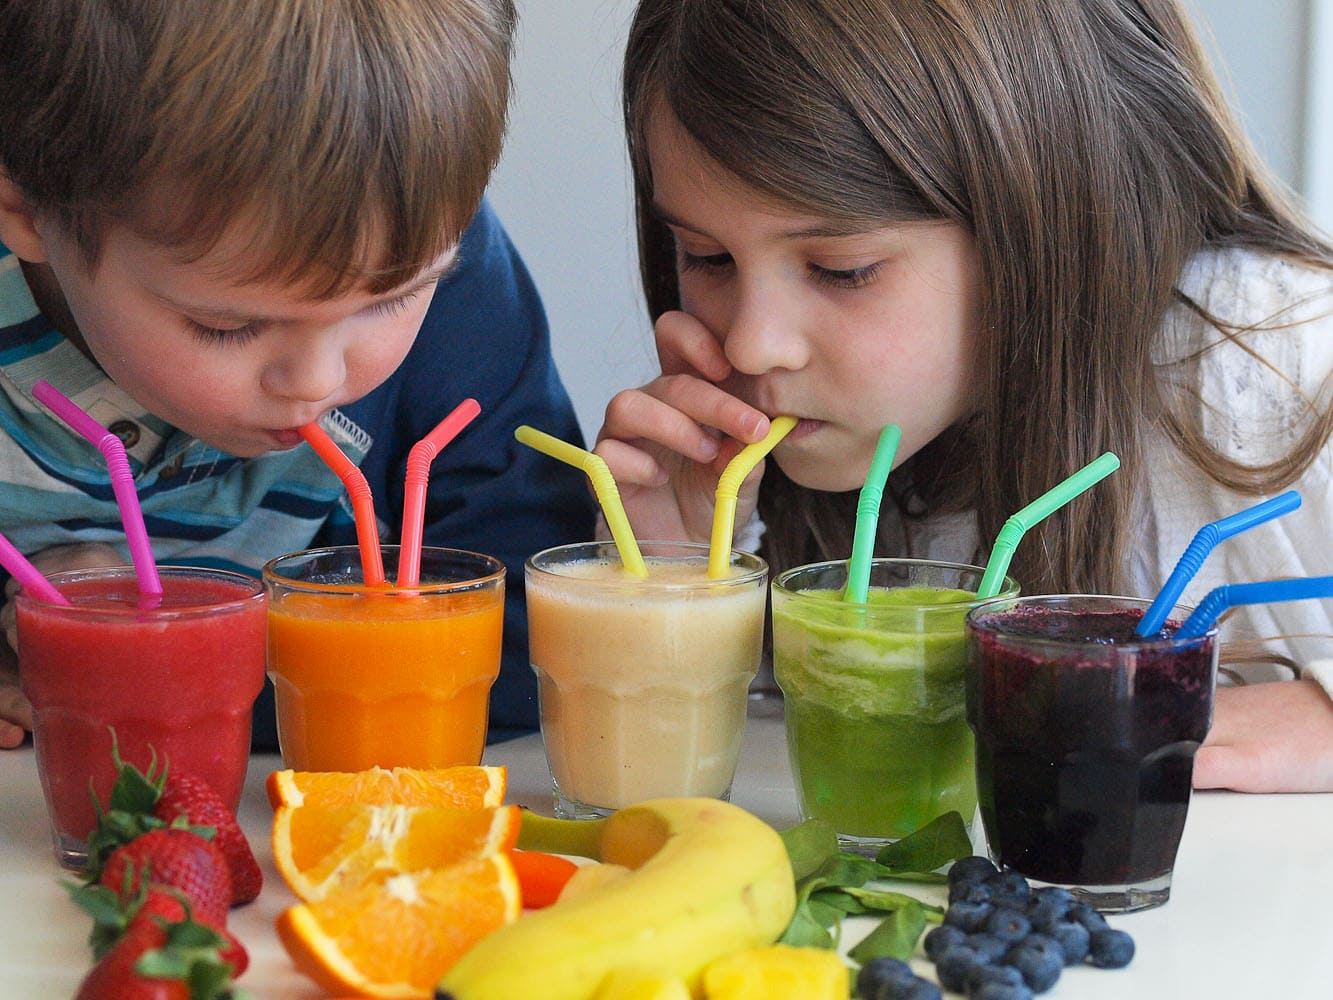 Rainbow Smoothies A Tasting Activity For Kids on Digestive System For Kids